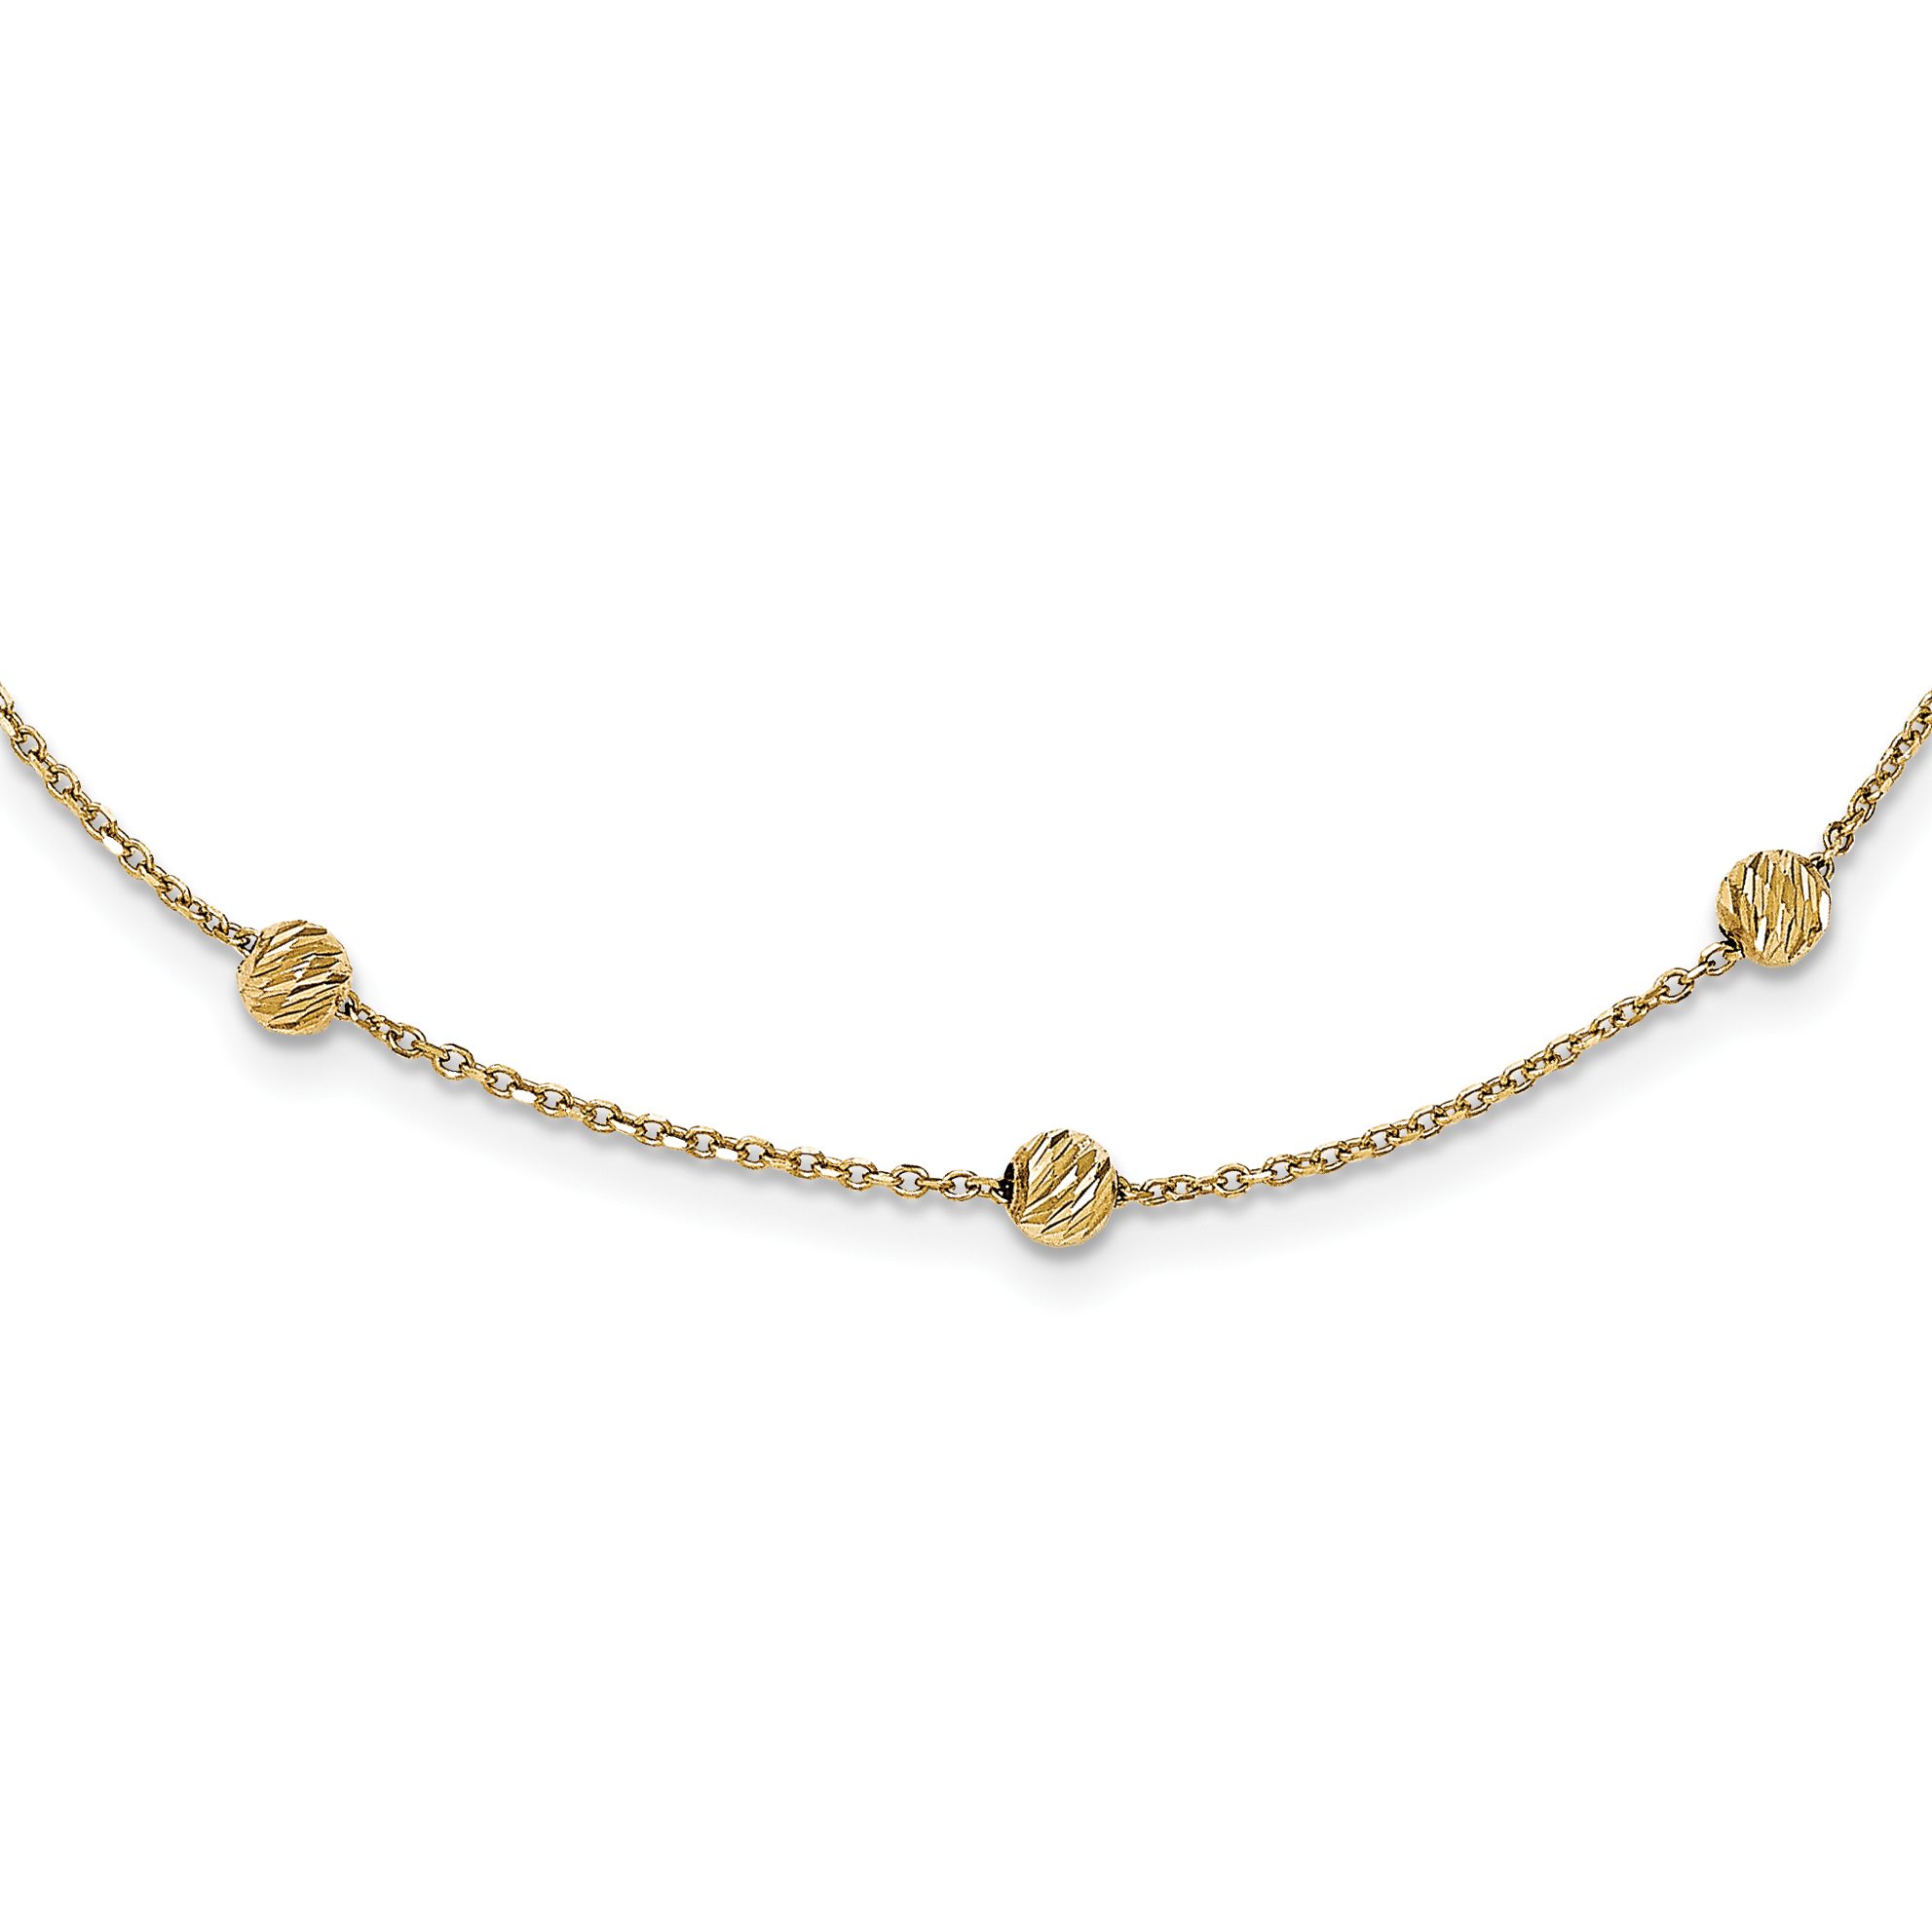 14k Yellow Gold Beads Station Chain Necklace Pendant Charm Bead Fine Jewelry For Women Gift Set